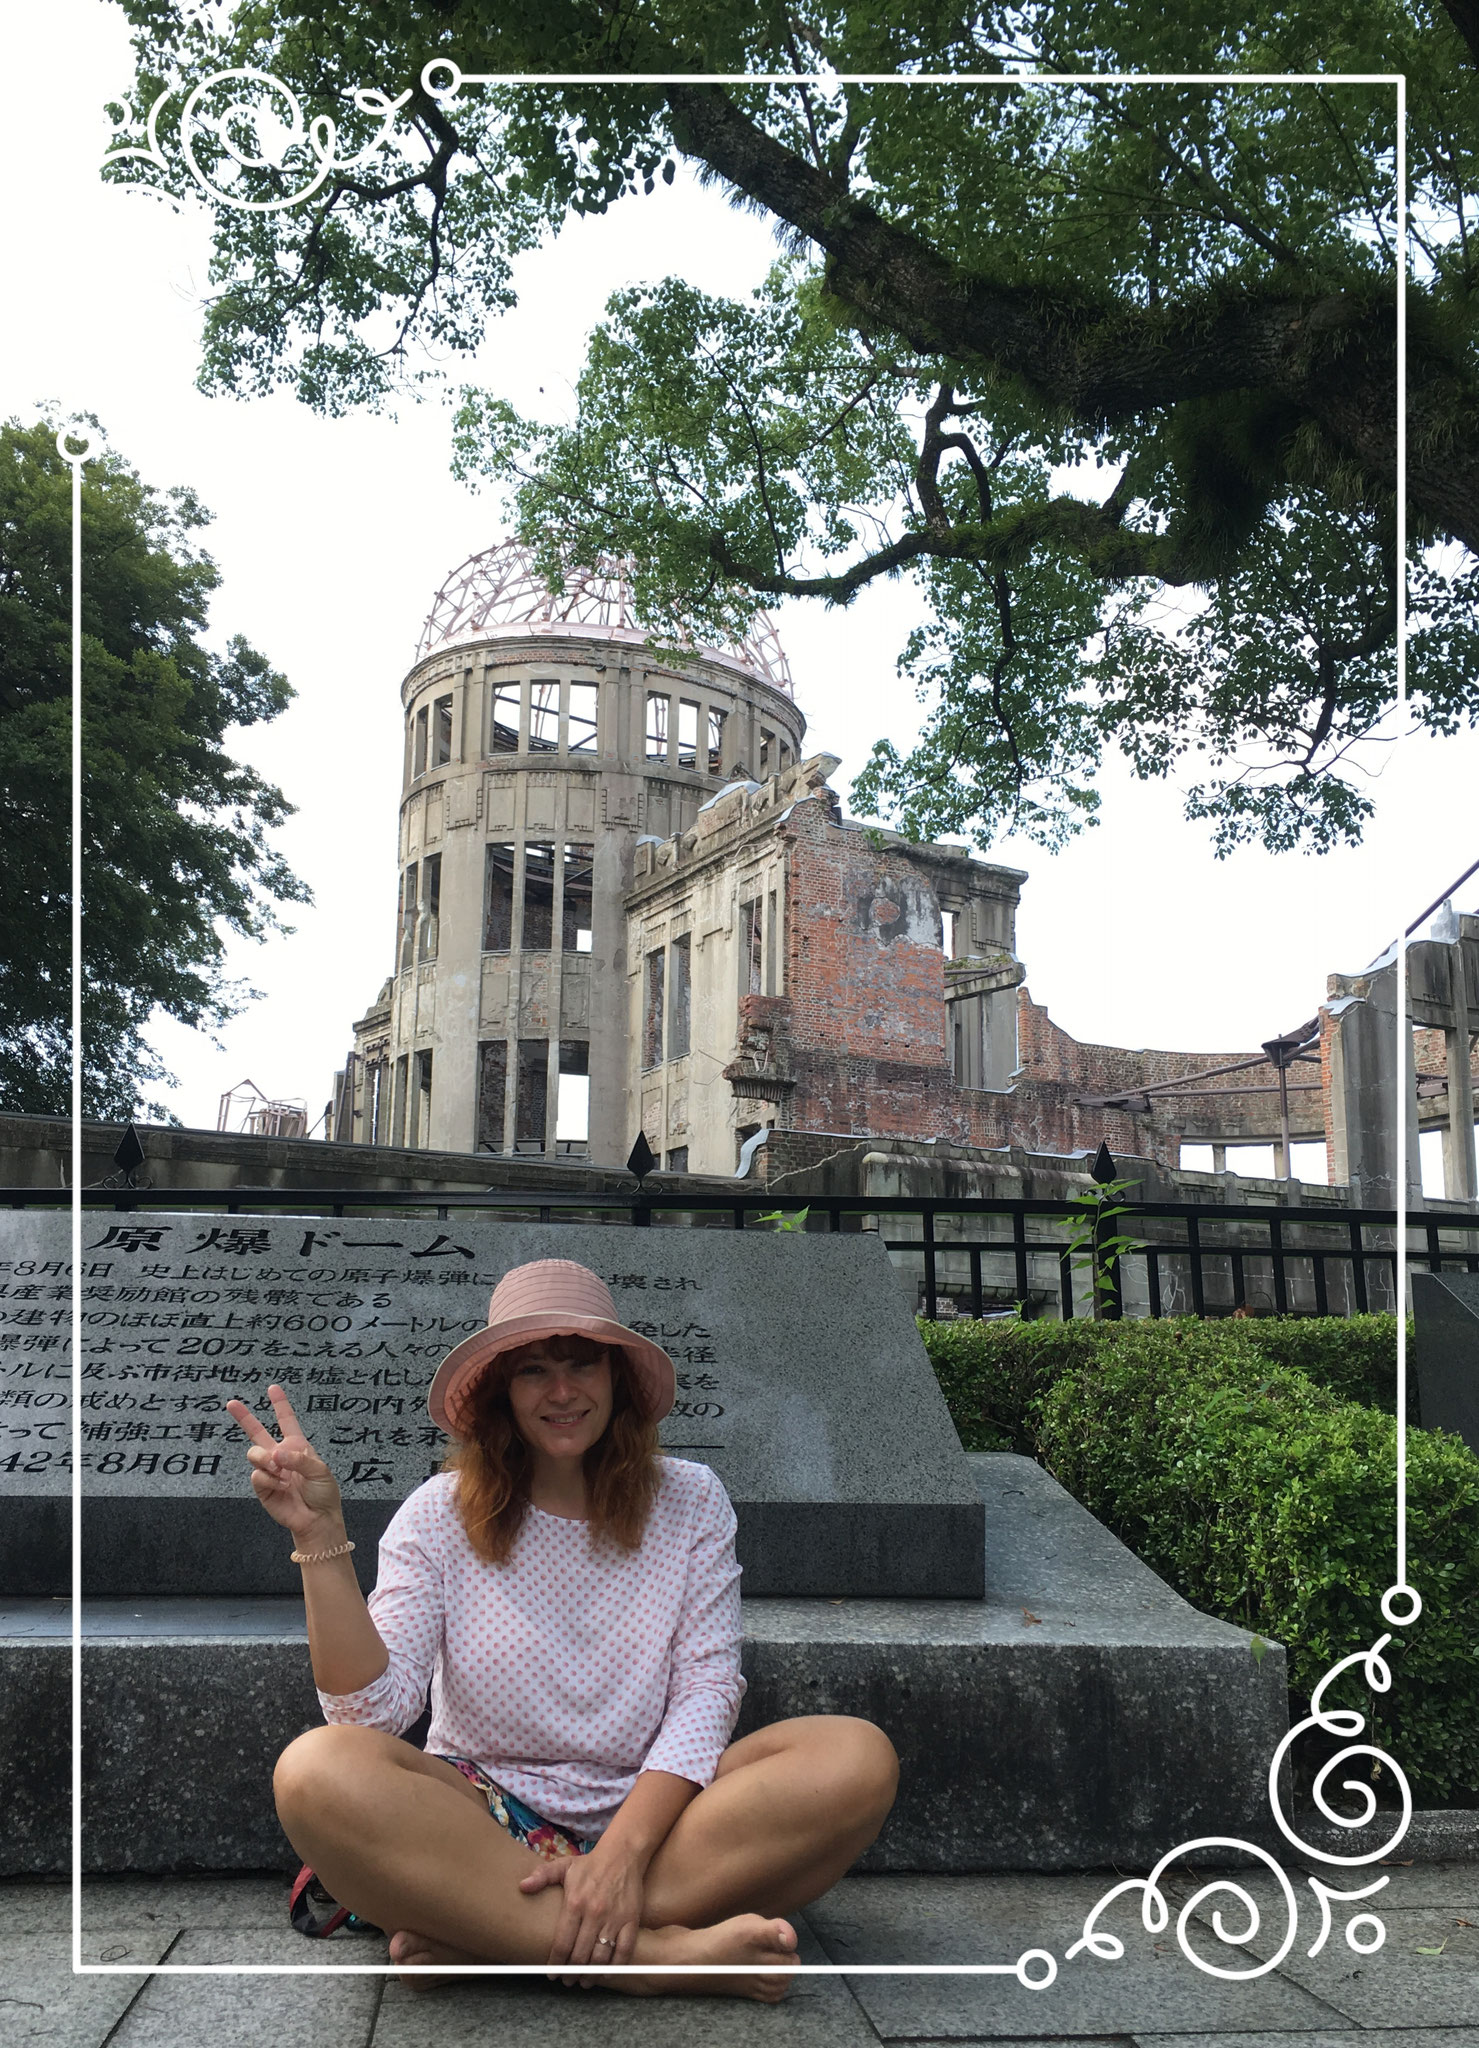 Hiroshima (Photo by Benjamin)